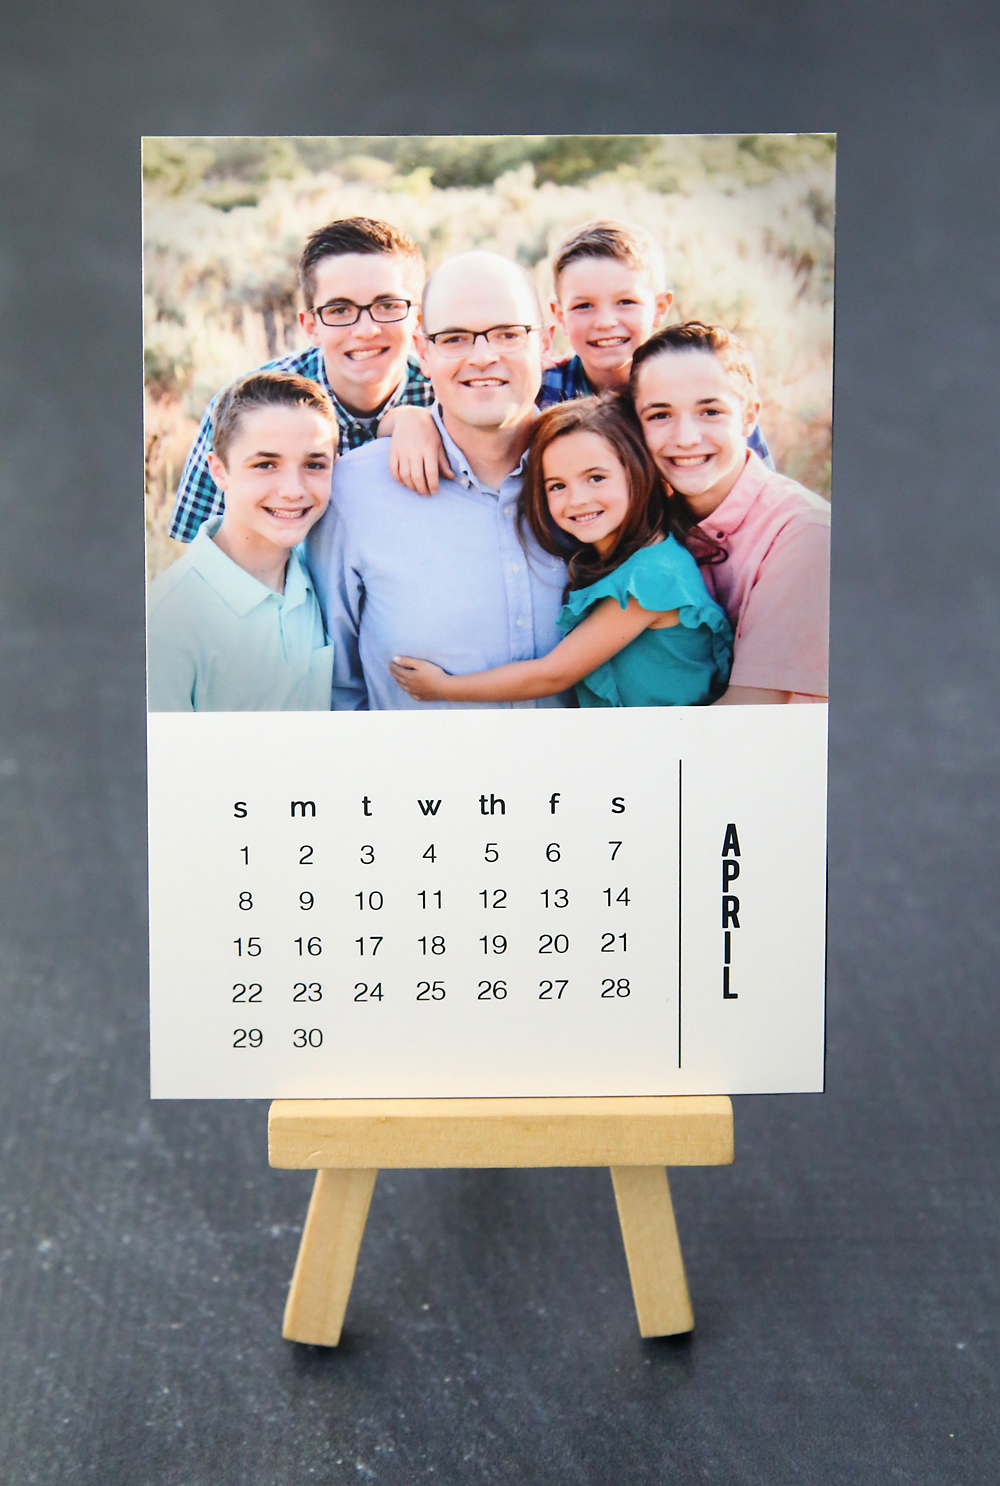 Photo gift idea: Mini photo calendar on a small easel